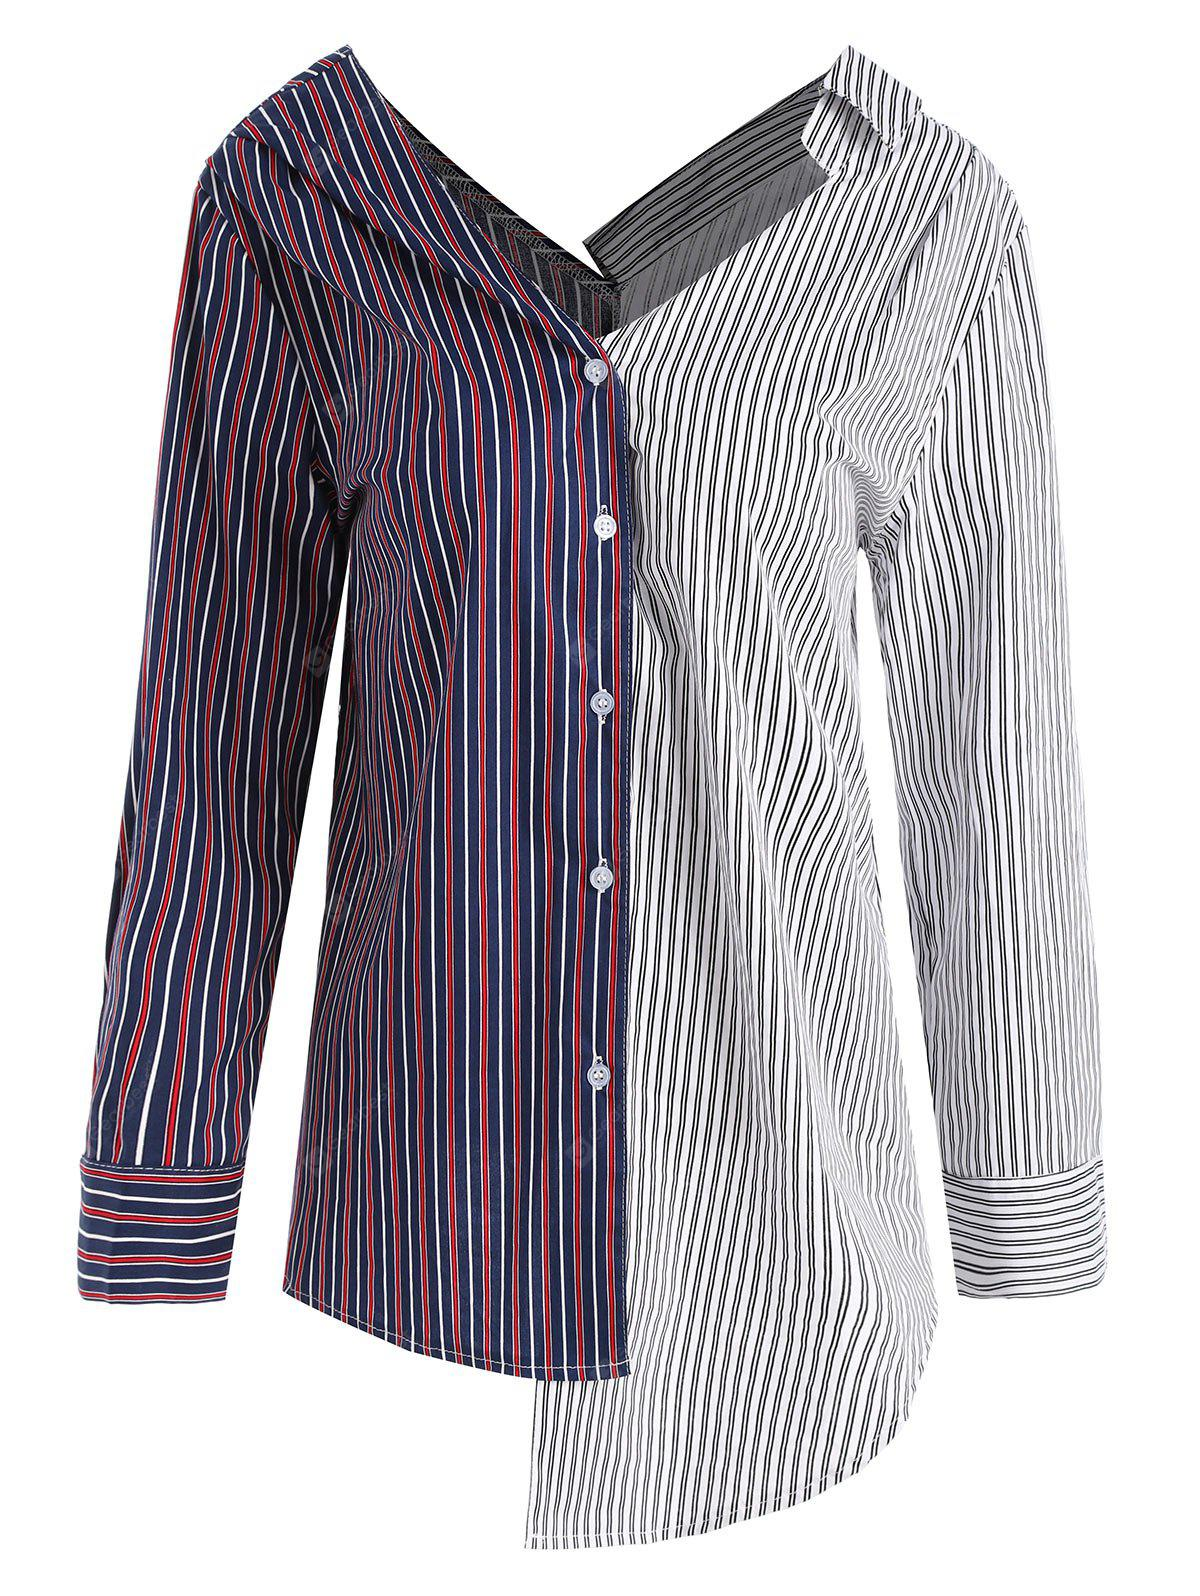 Contrast Striped Asymmetrical Plus Size Blouse